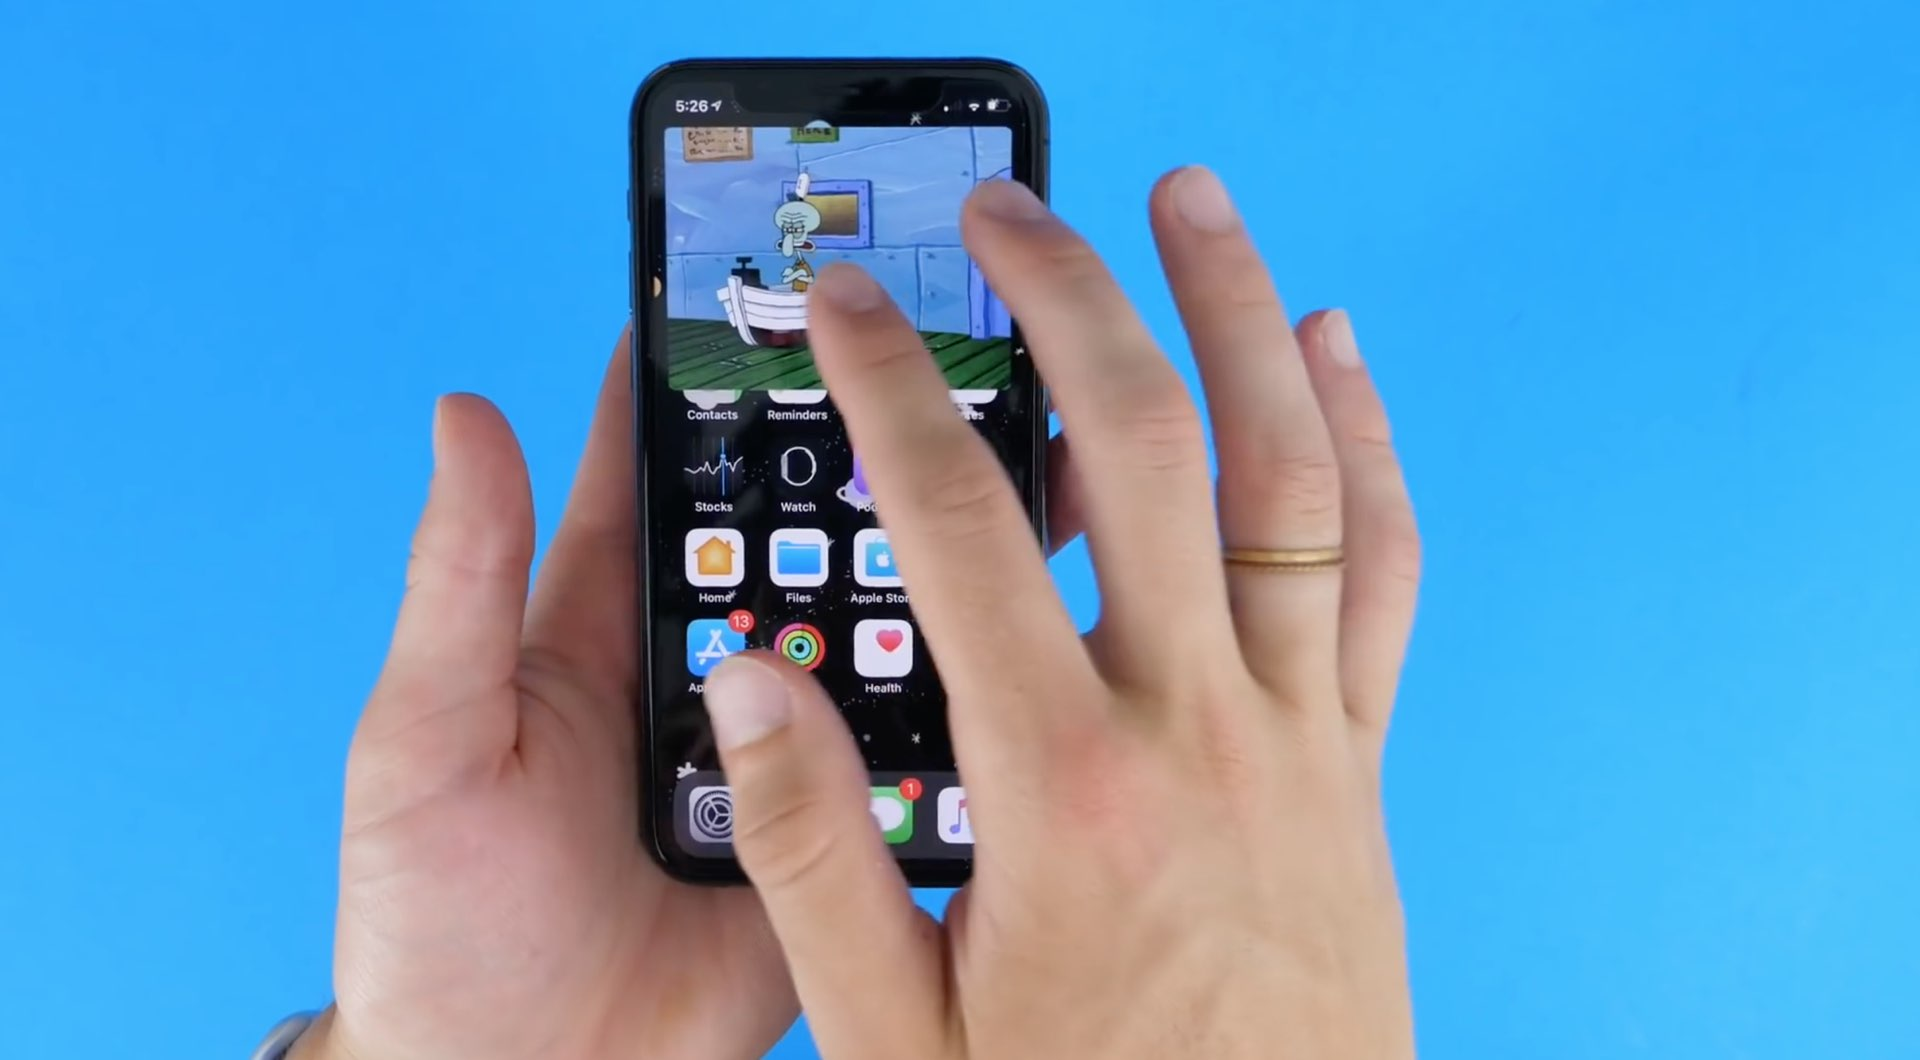 Picture in Picture on iPhone - maximizing the overlay